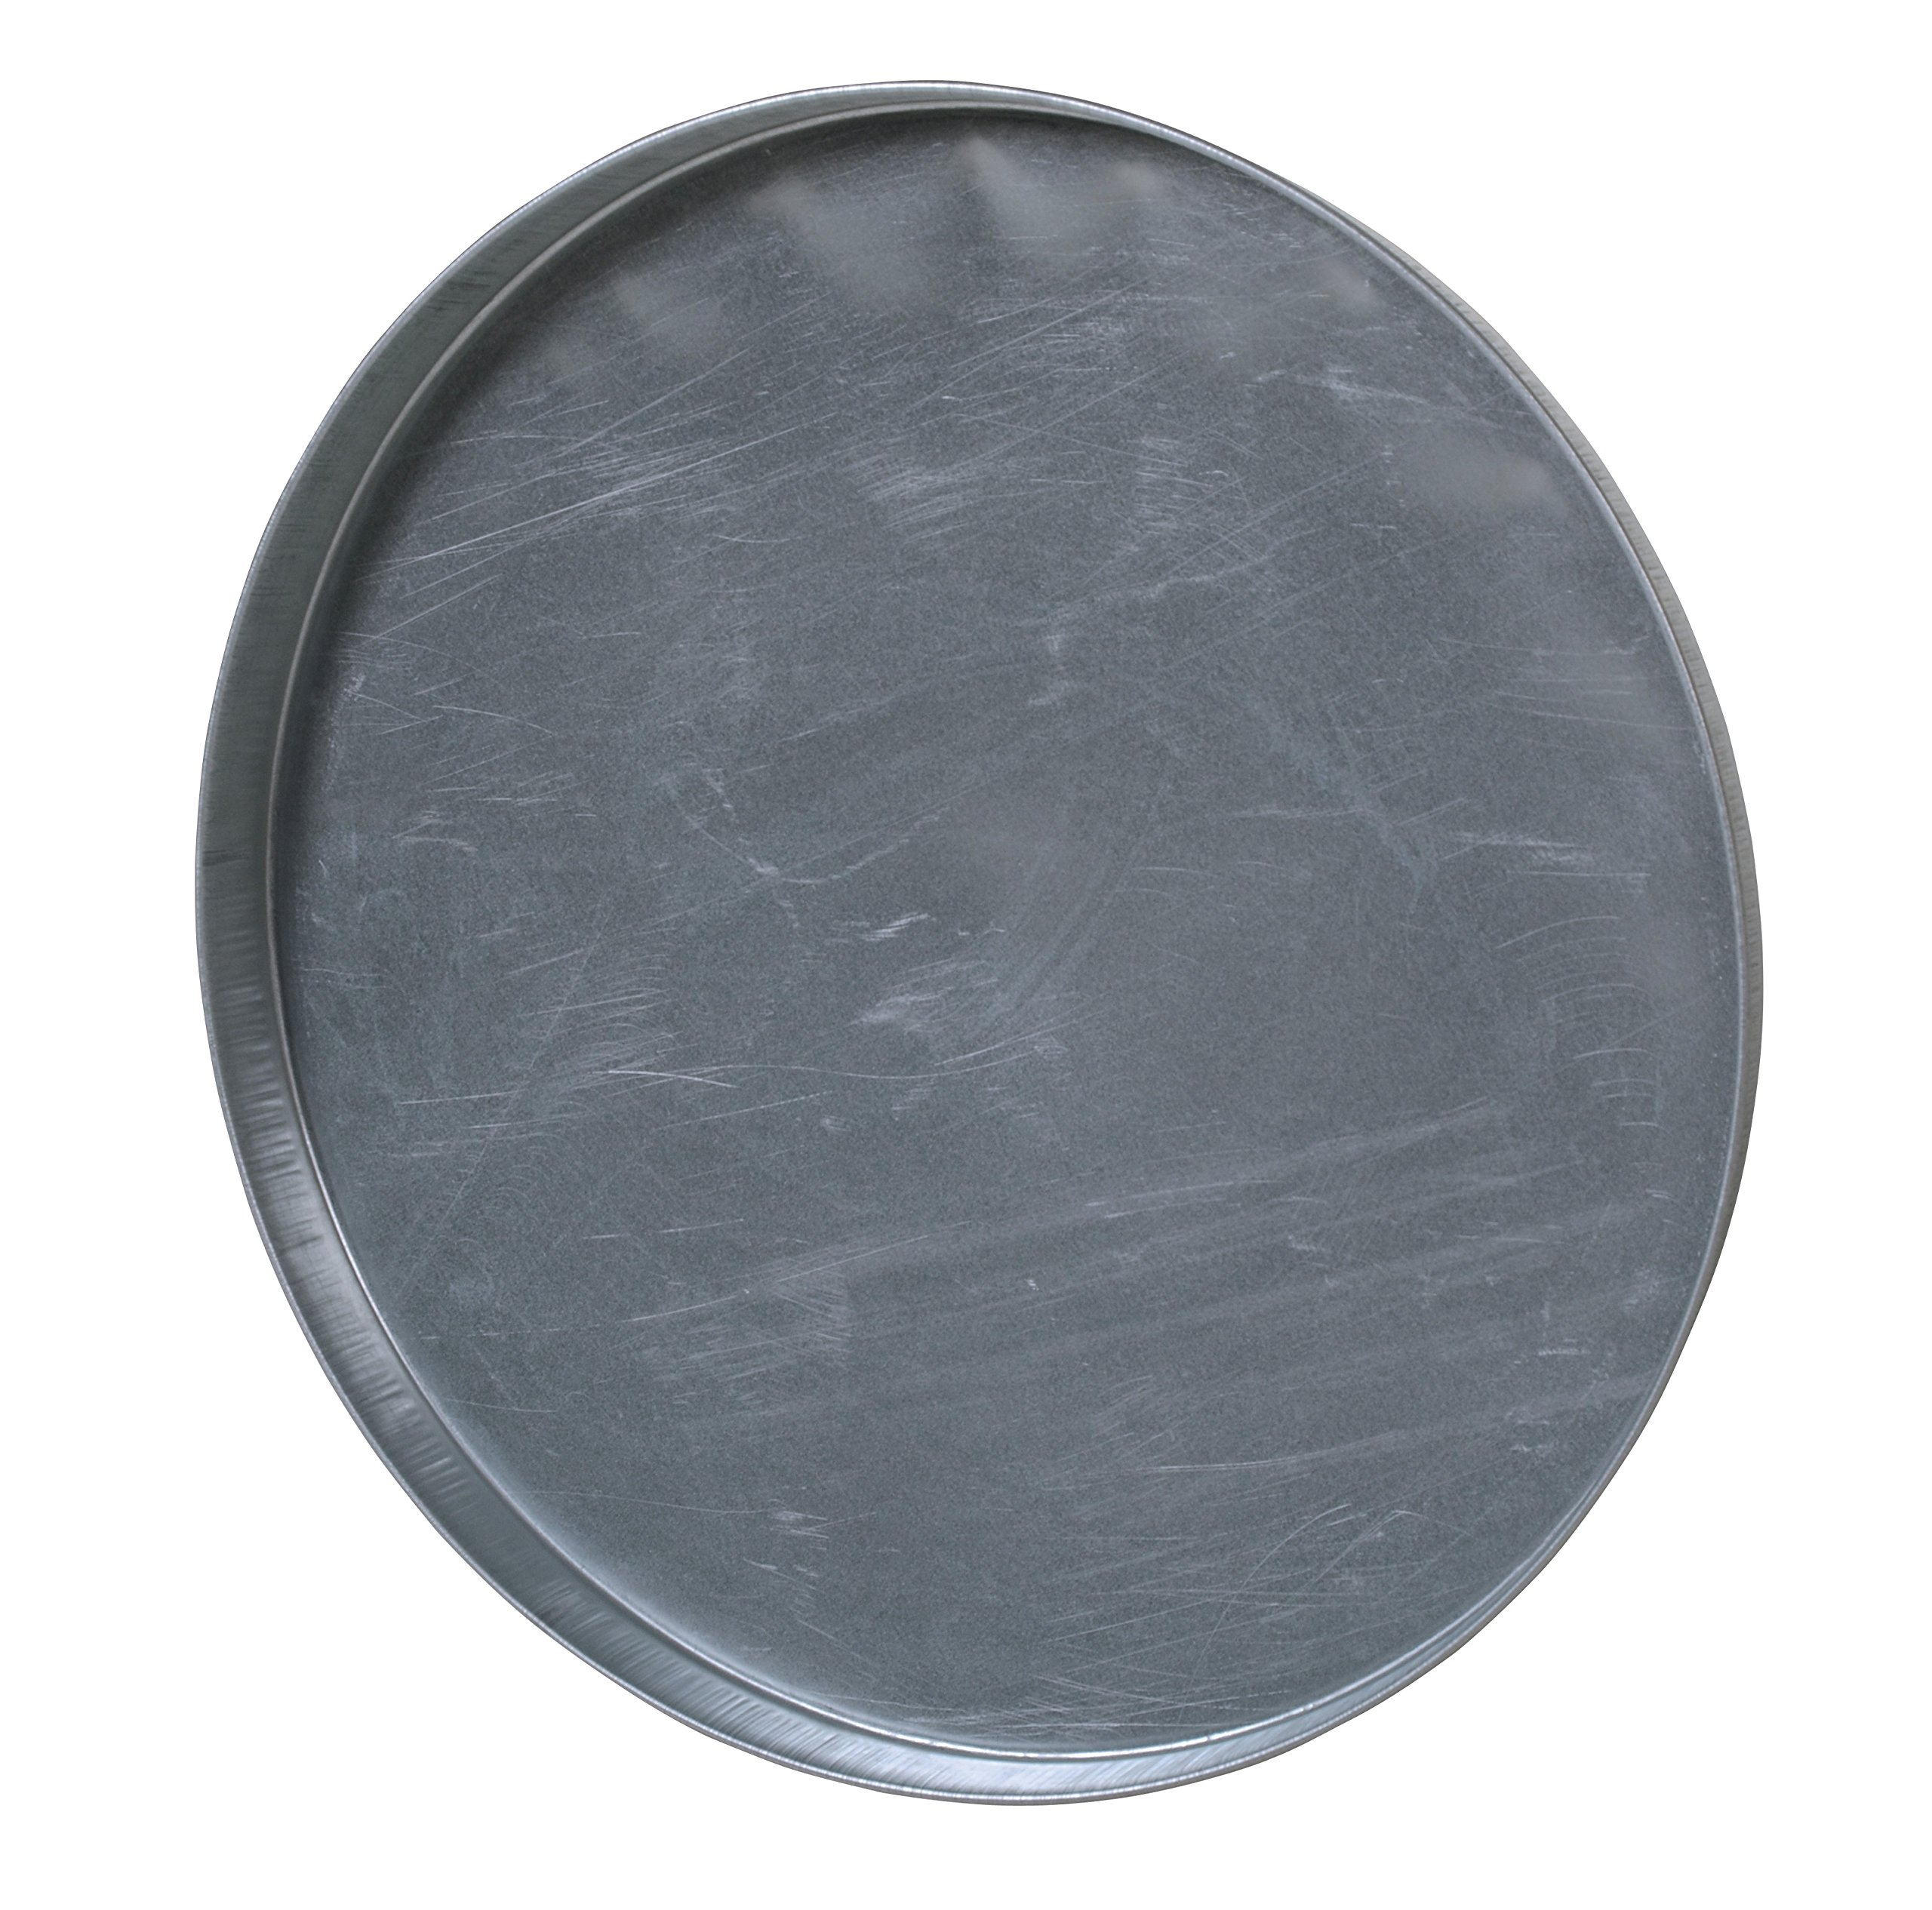 Vestil DC235 Closed Head Galvanized Steel Drum Cover for use with 55 gallon